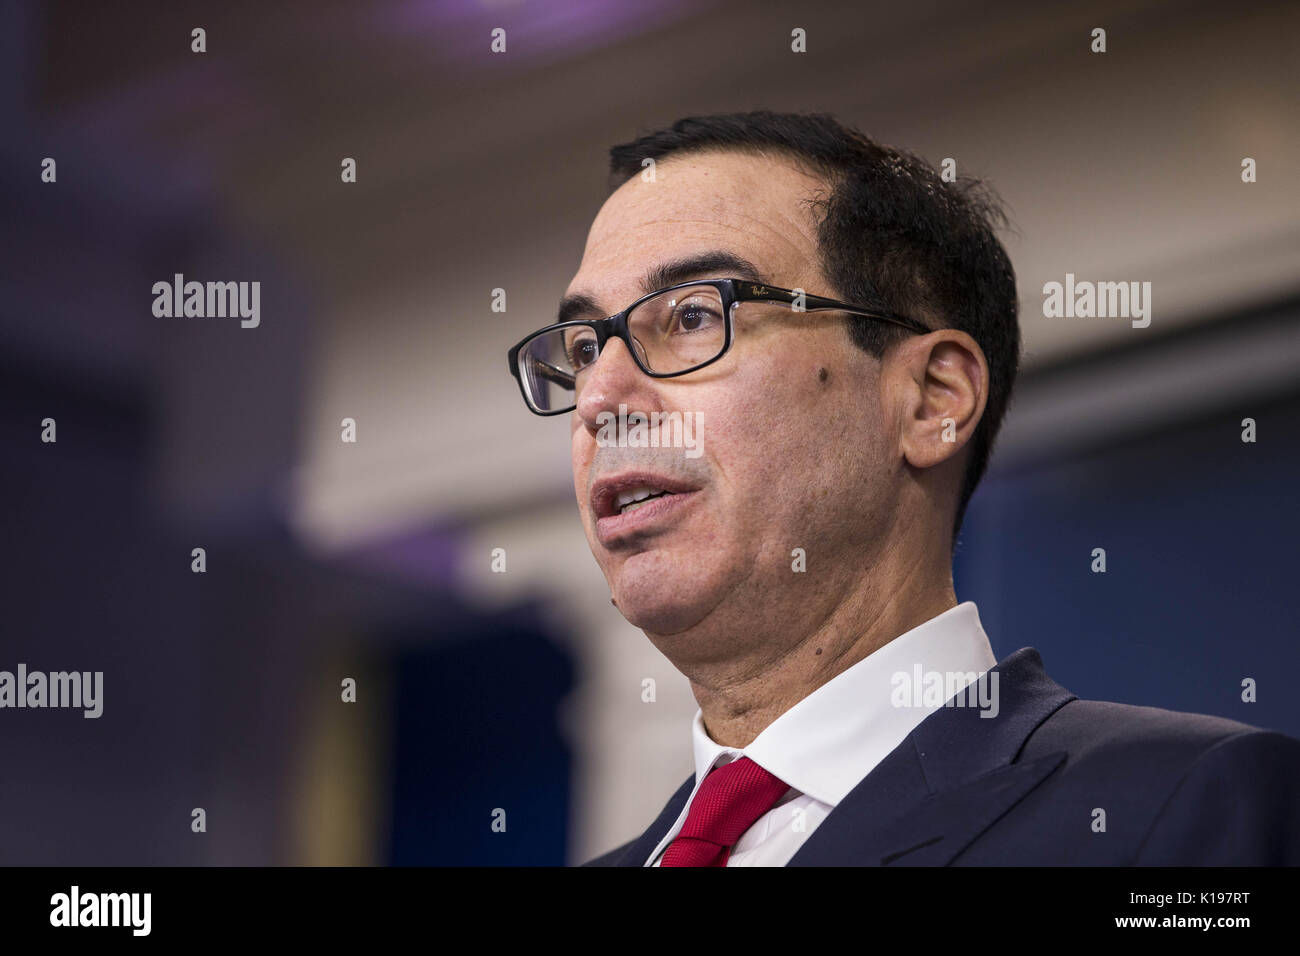 Washington, District of Columbia, USA. 25th Aug, 2017. Secretary of the Treasury STEVEN MNUCHIN answers questions relating to President Trump's new financial sanctions on Venezuela and concerns about the debt ceiling during the White House daily press briefing. Credit: Alex Edelman/ZUMA Wire/Alamy Live News - Stock Image